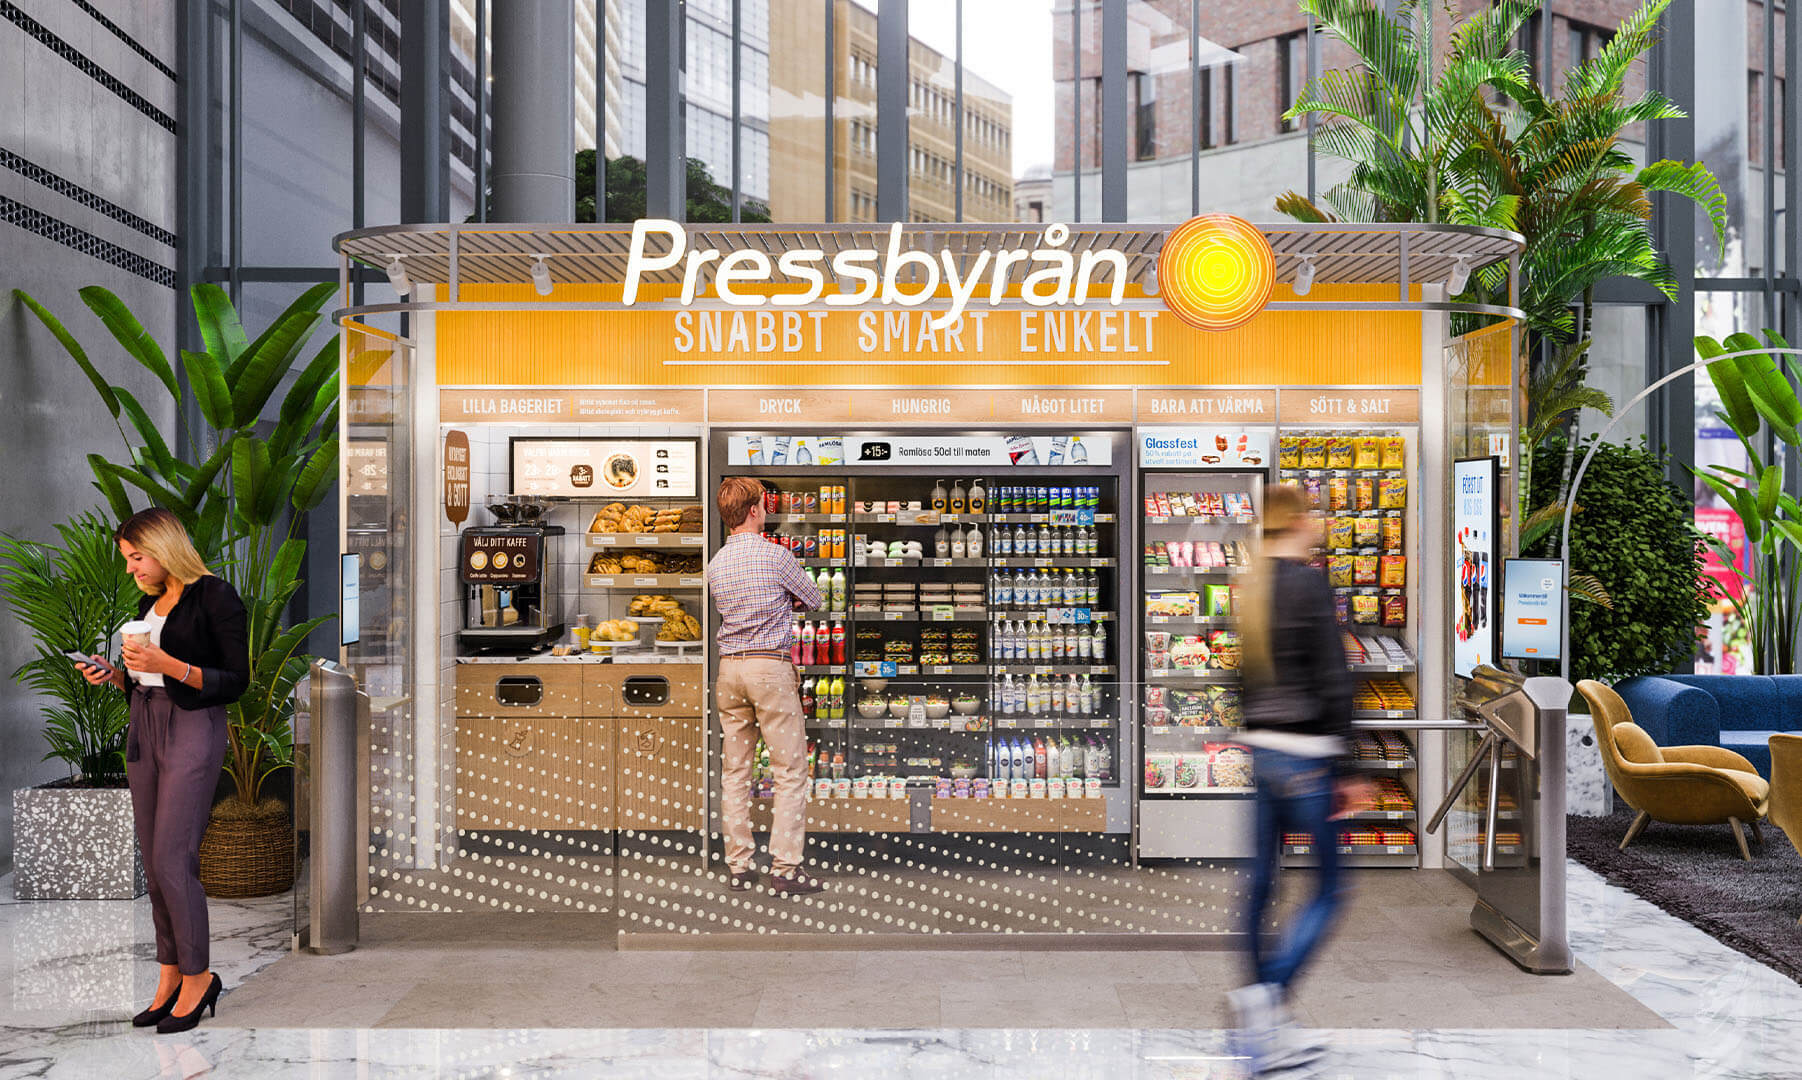 Frontal view of Pressbyran vending systems in action with a man and a woman browsing the products.